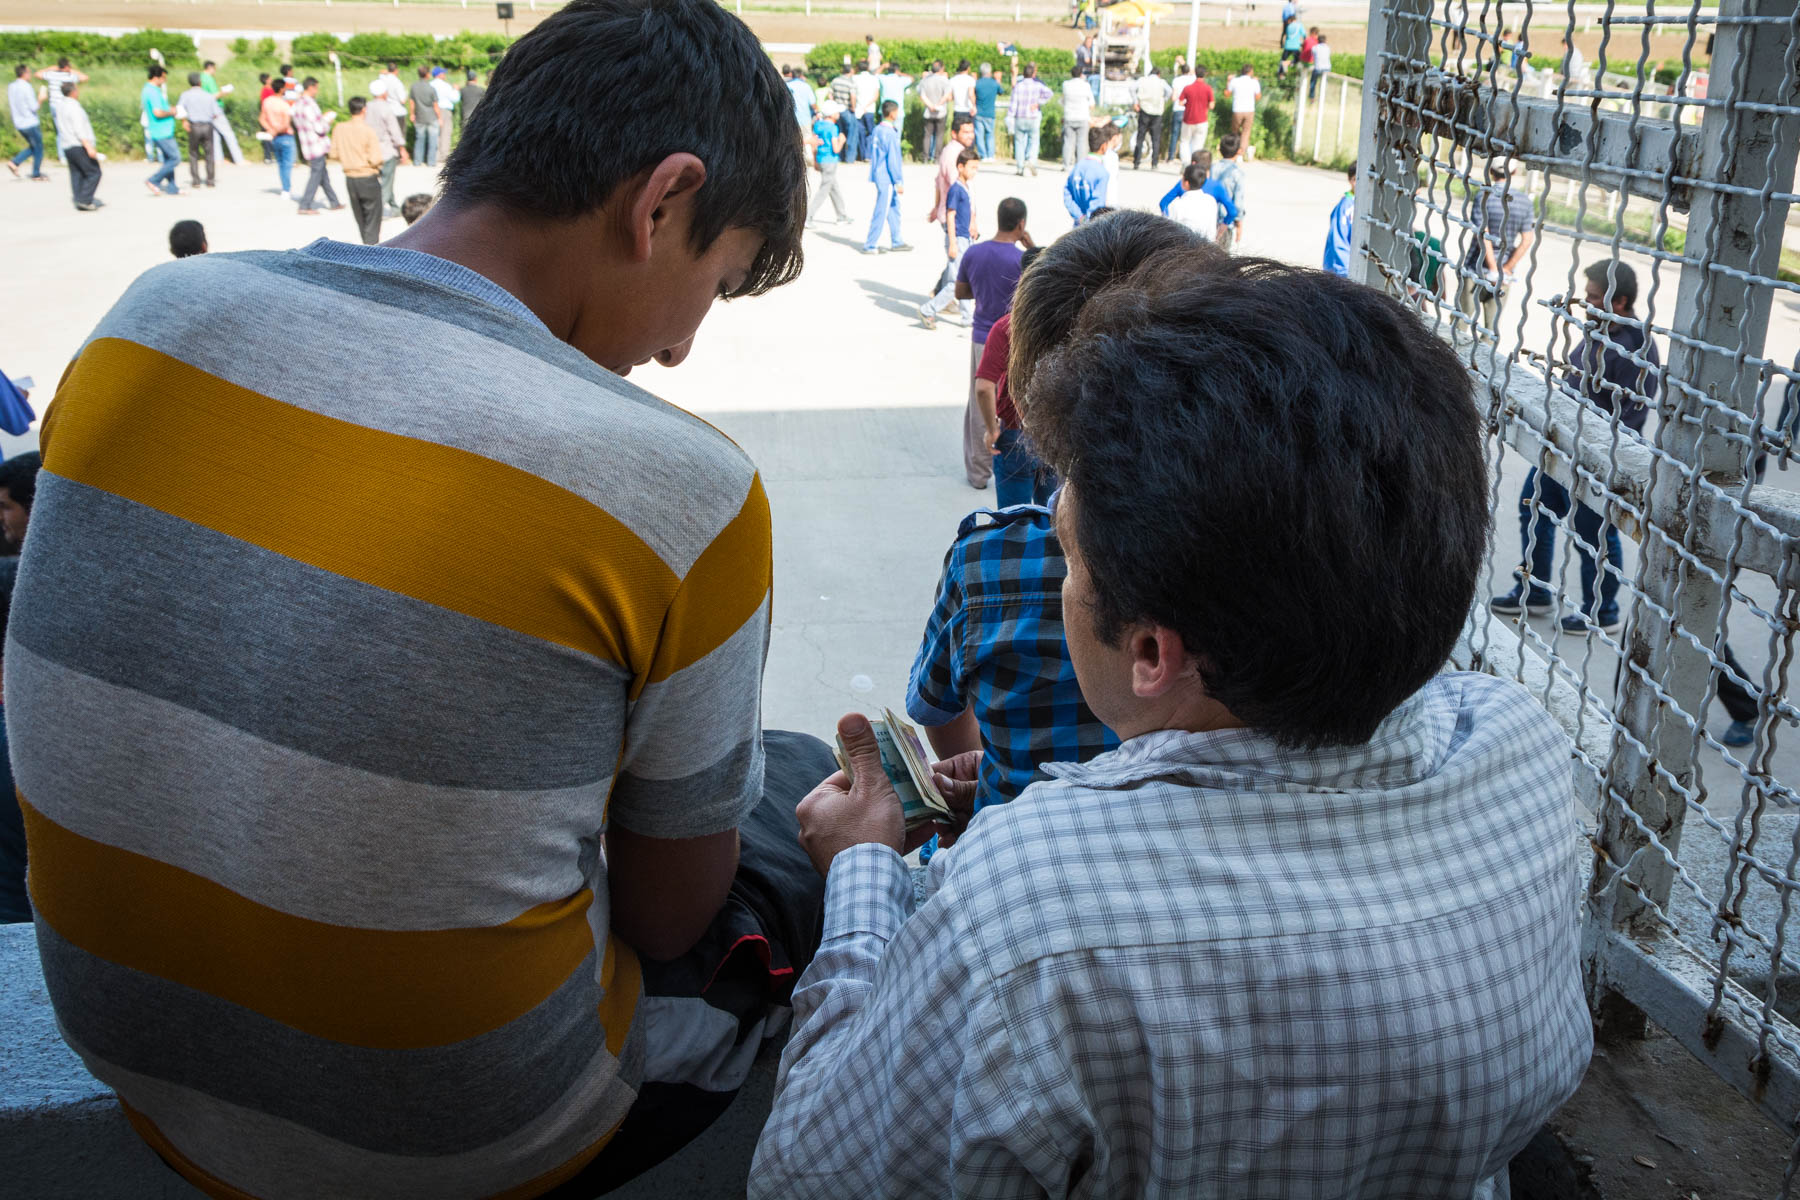 Paying out bets at the horse races in Gonbad-e Kavus, Iran.